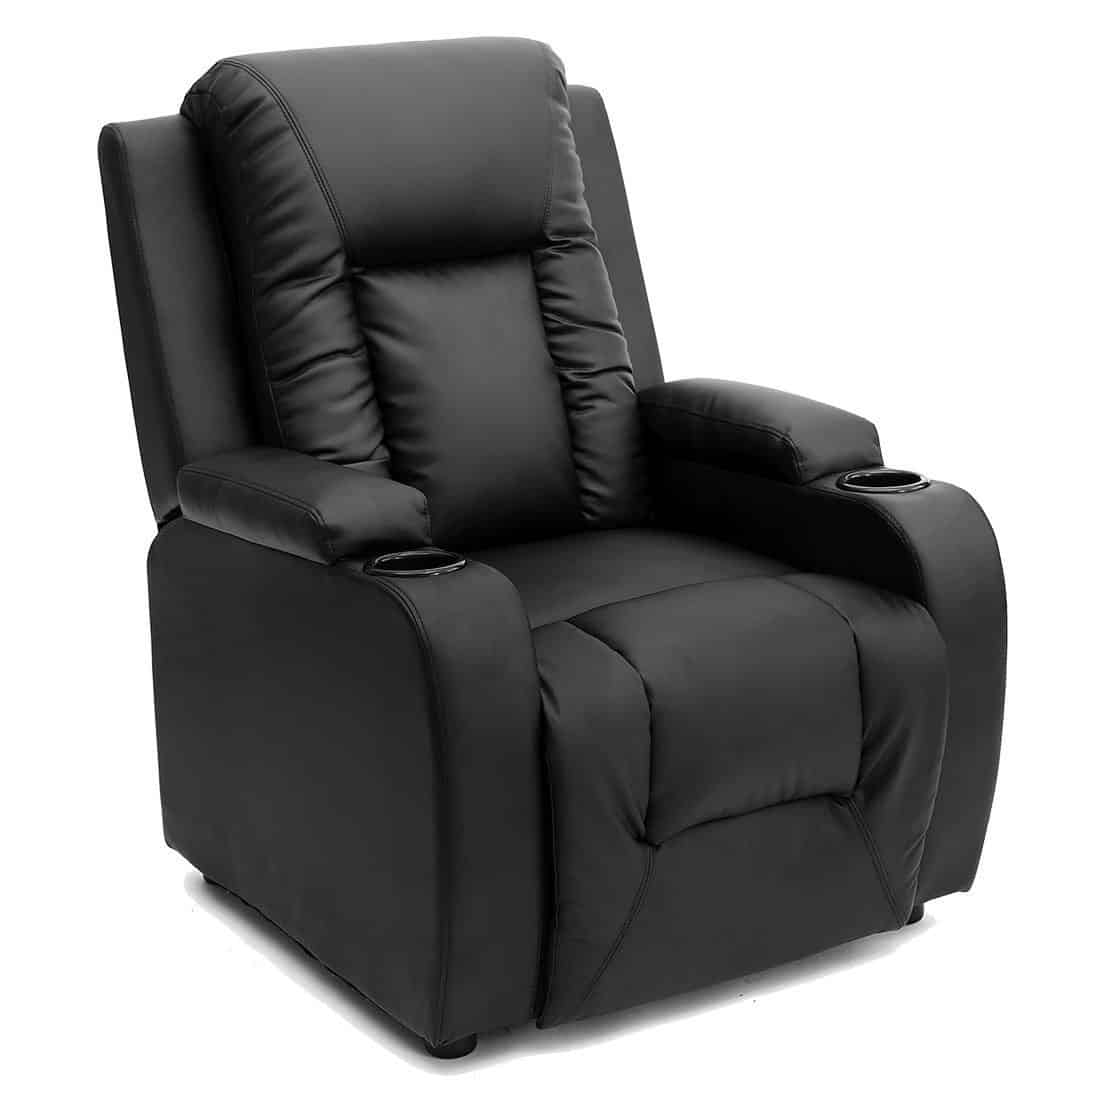 The Best Electric Recliner Chairs For The Elderly In 2018